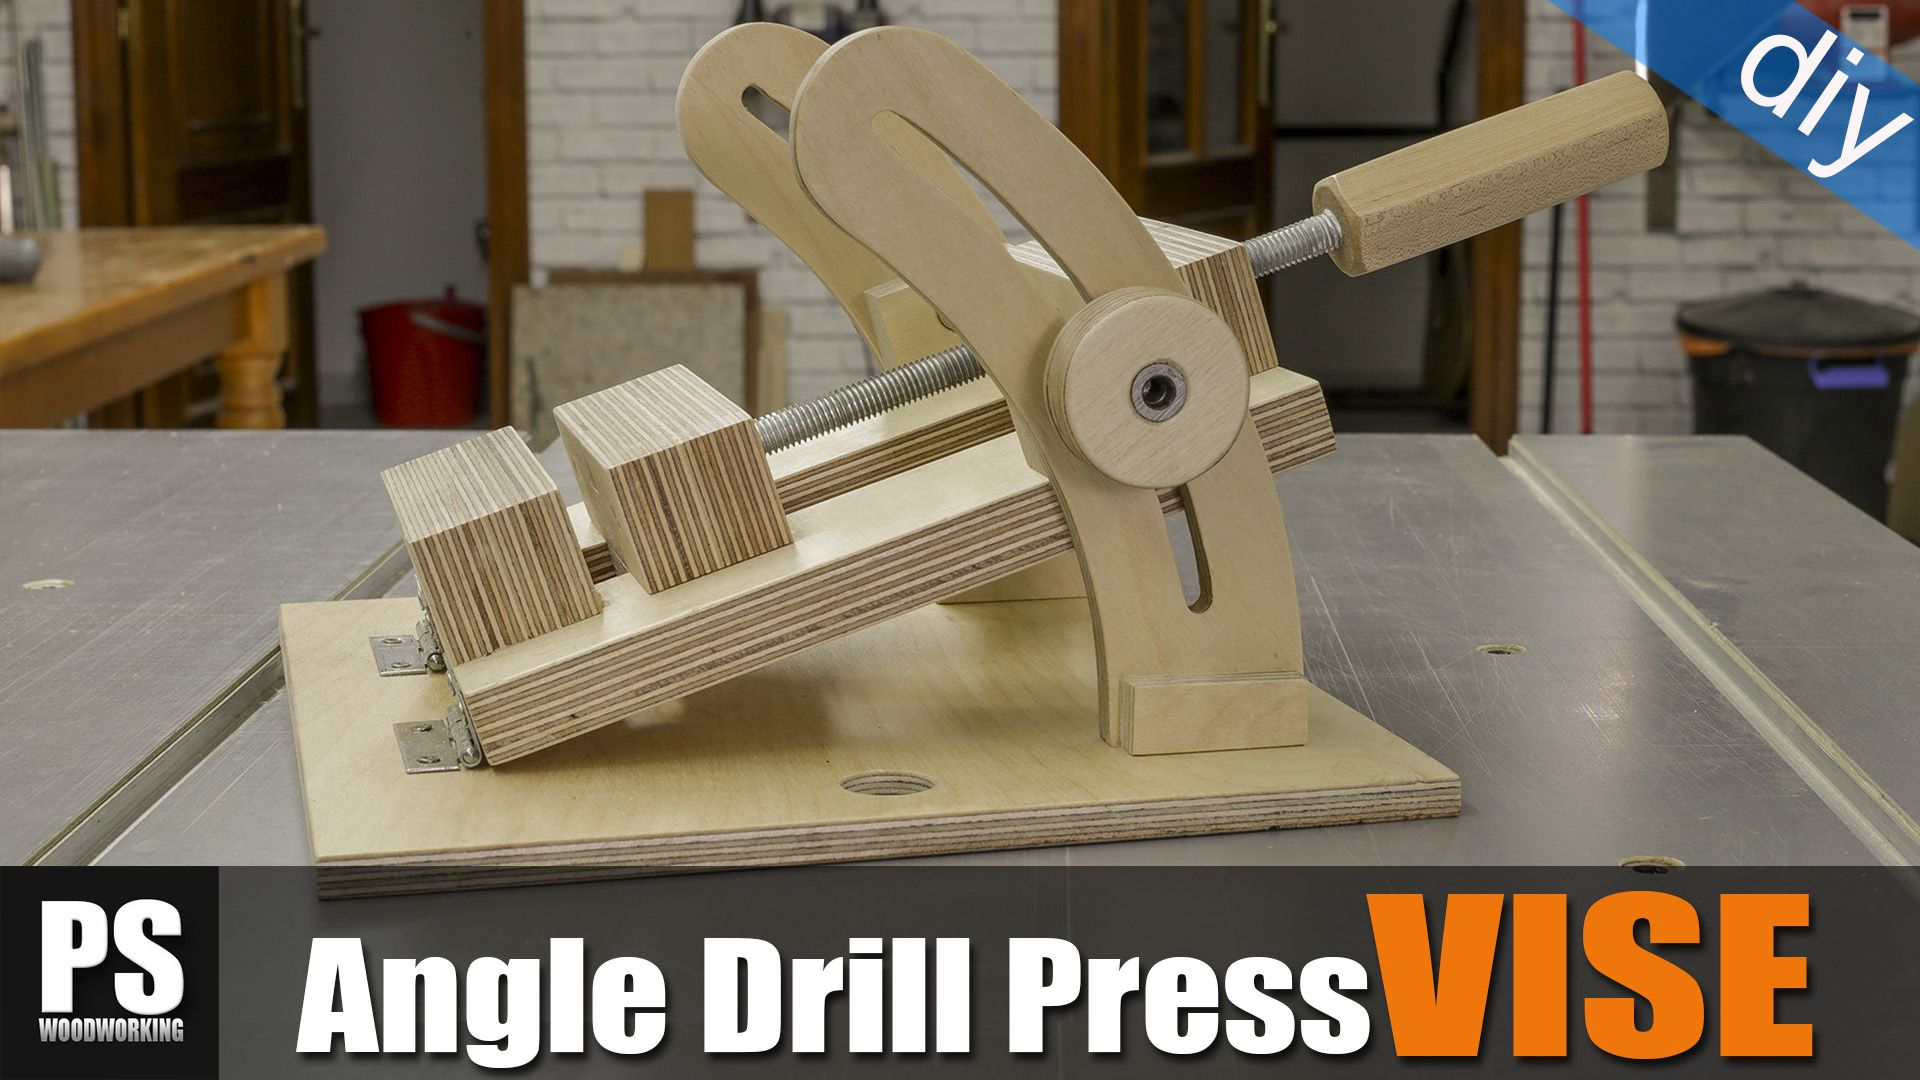 Today I'll make an angle drill press vise that will allow